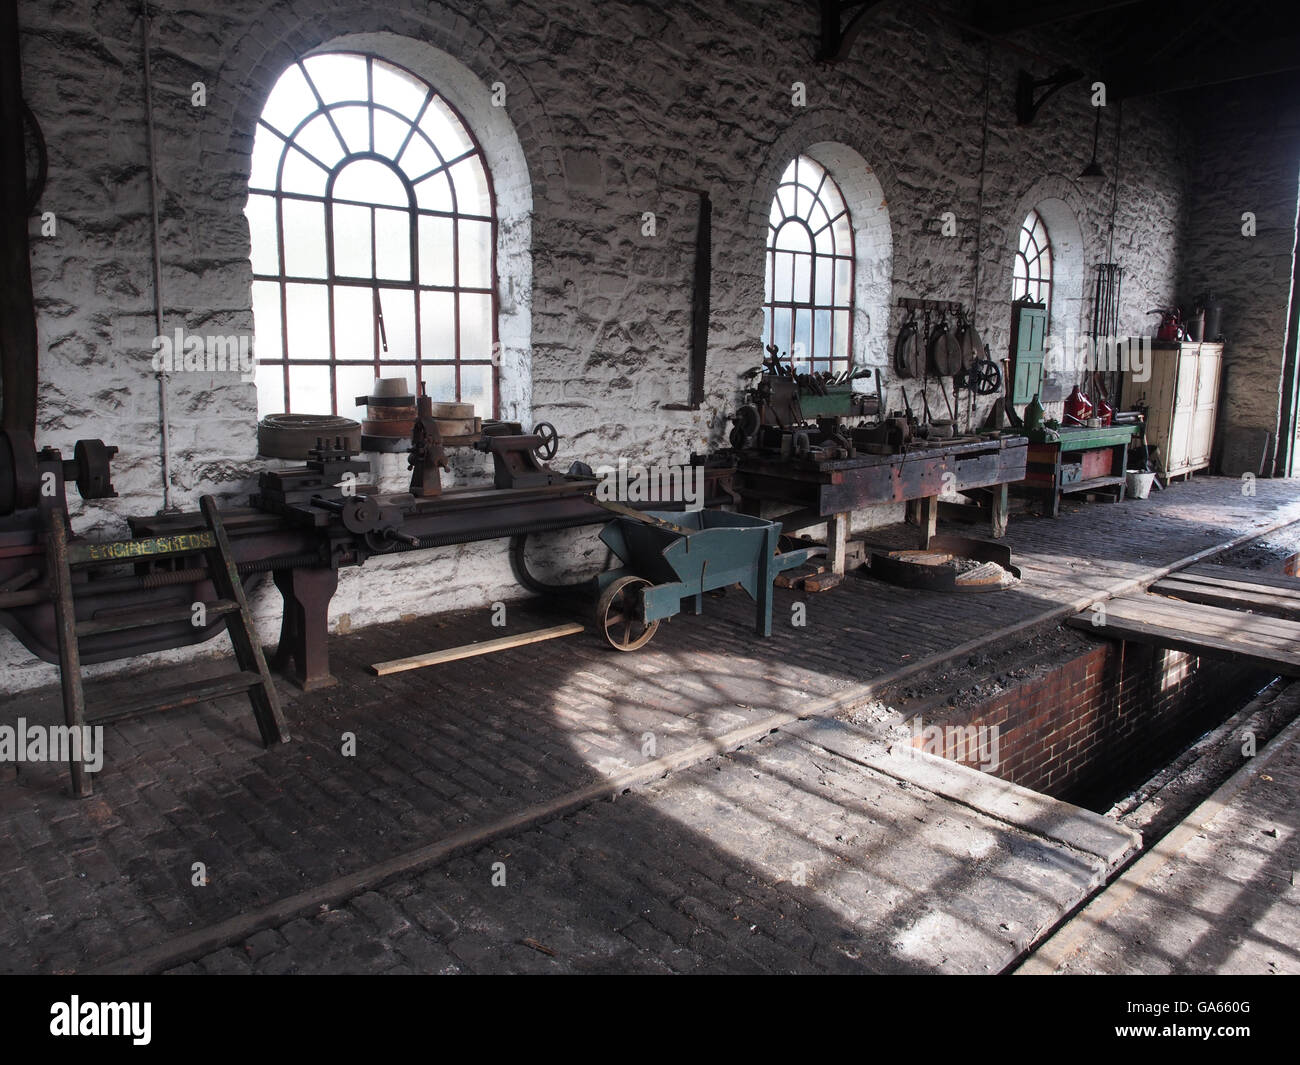 Traditionally equipped  steam engine shed and workshop at the Beamish outdoor museum near Durham, England - Stock Image